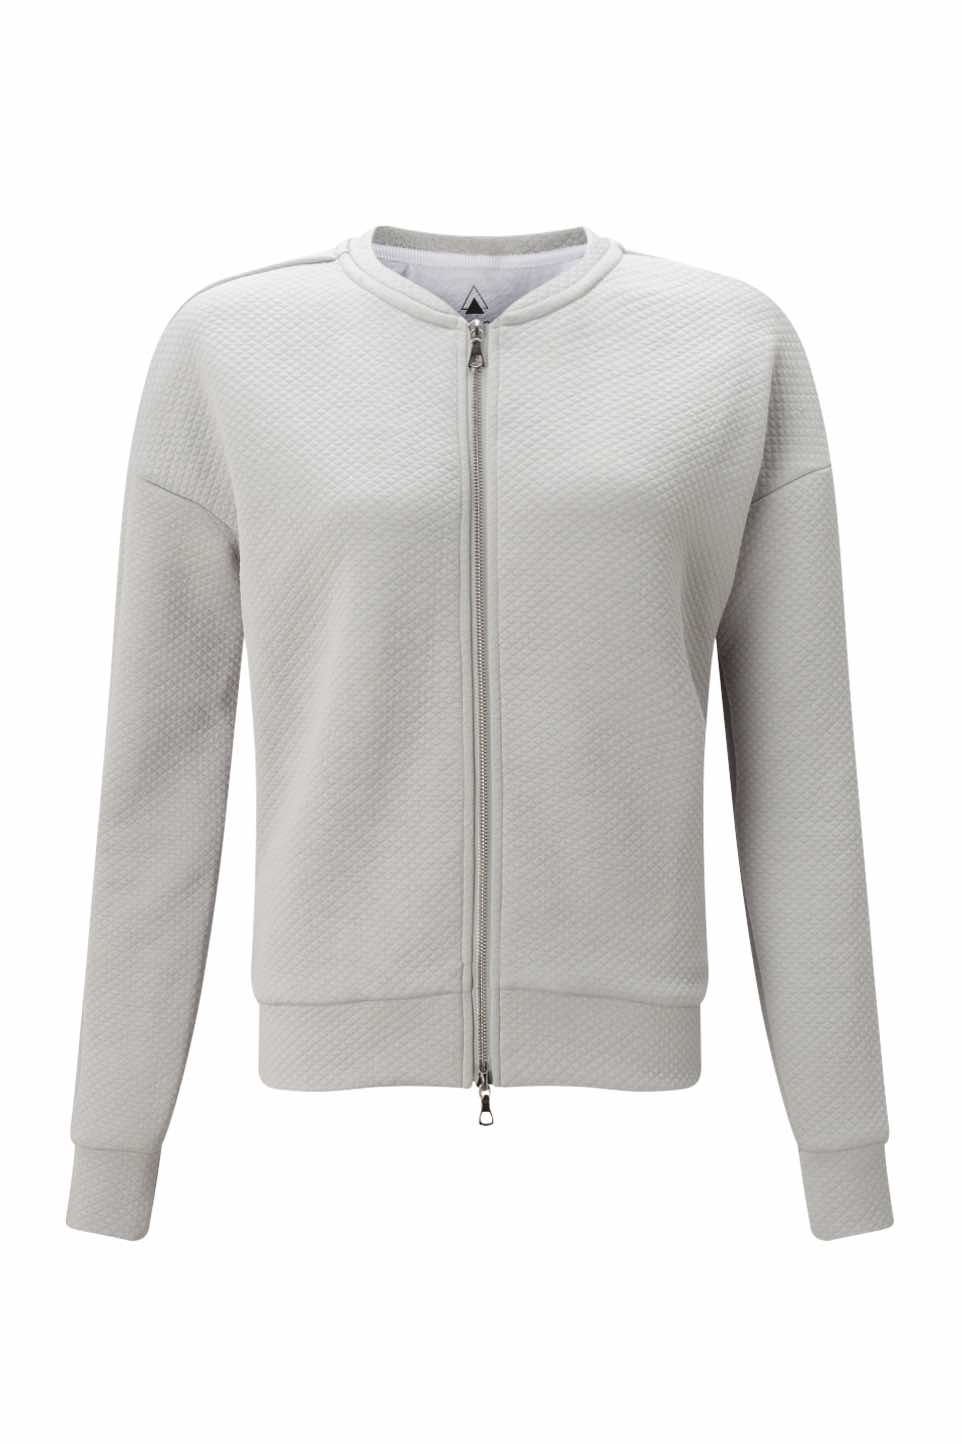 Second skin - Designed in London and produced in an all-female factory in Lithuania using non-toxic materials and mindful manufacturing, Silou Active's luxury activewear, like the Gaia Sweatshirt, £230, is made with conscience.https://reve-en-vert.com